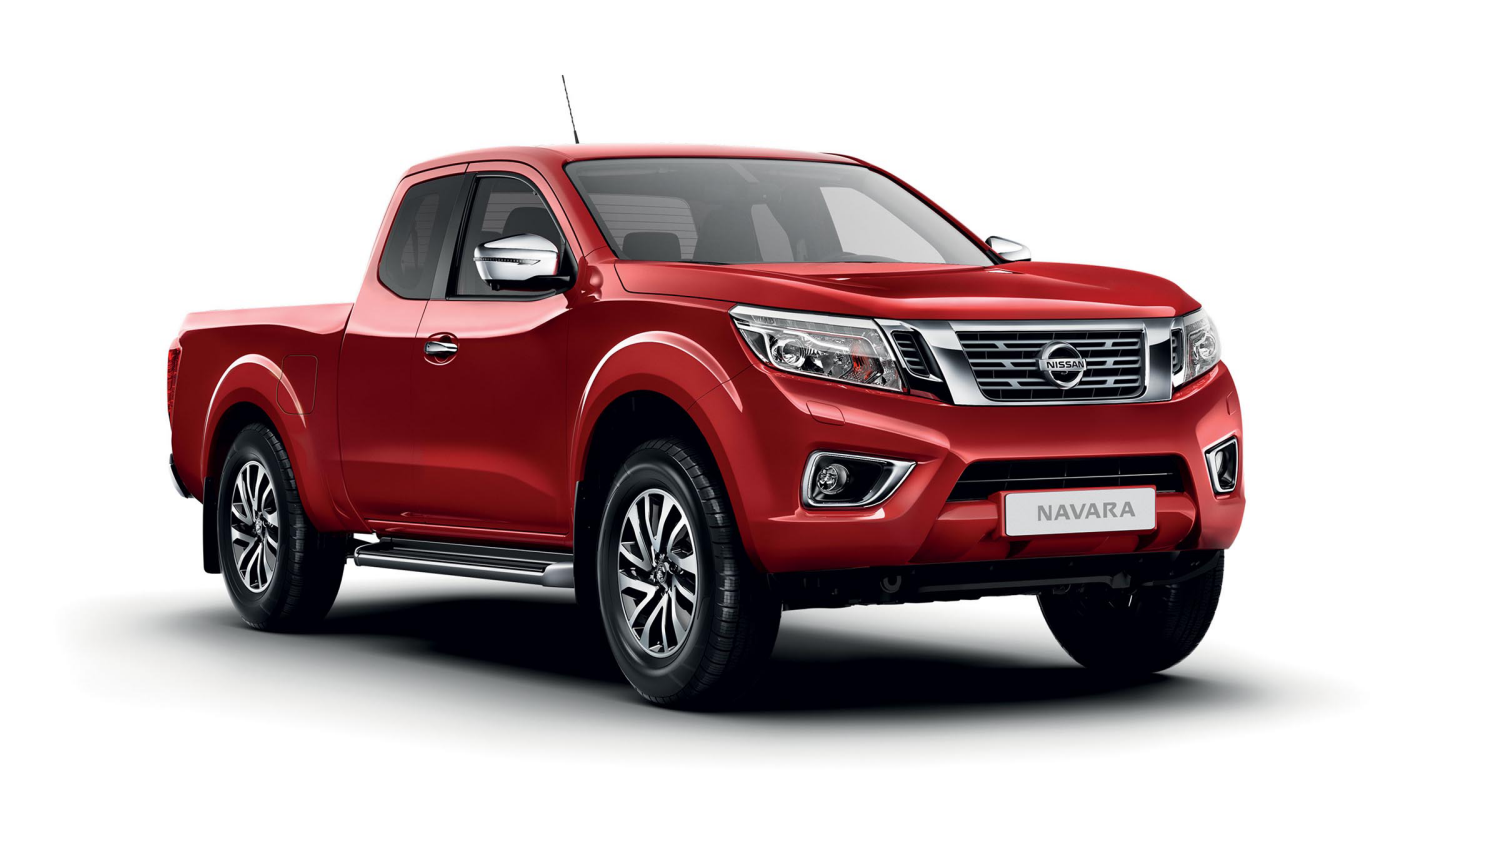 Nissan NP300 NAVARA Double Cab N-Connecta - 3/4 front view